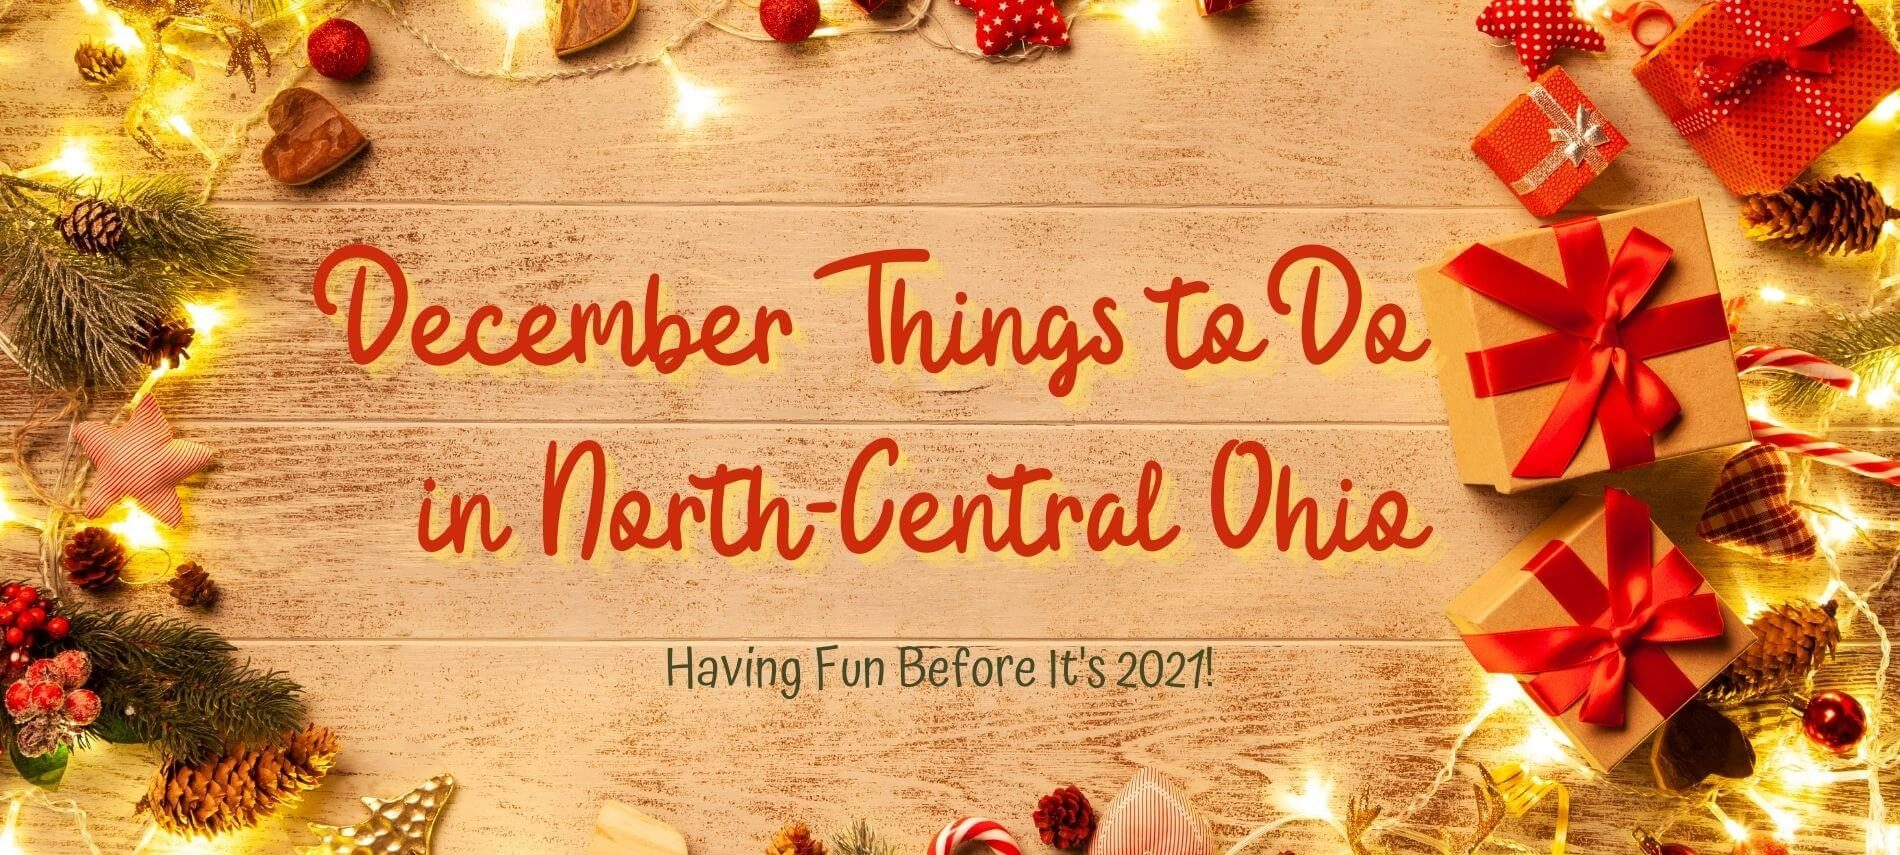 Wooden background, fit boughs, ribbons and Christmas lights with the words: Things to Do in Deember in North-Central Ohio - Having Fun Before It's 2021